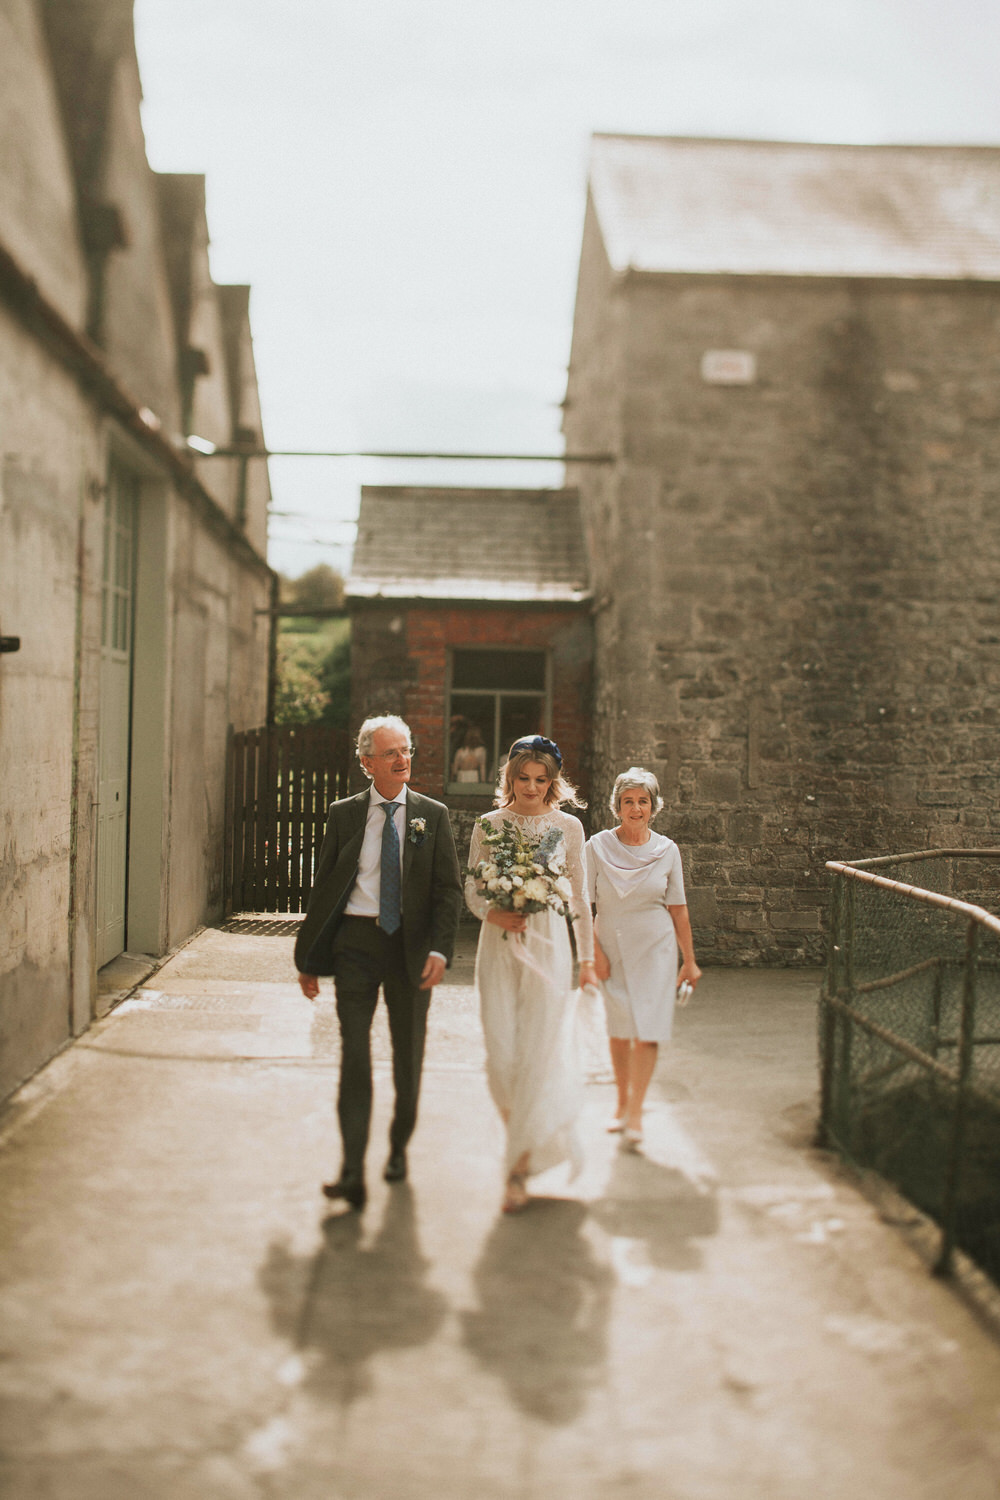 The Millhouse wedding ceremony | C&C - Irish wedding 51